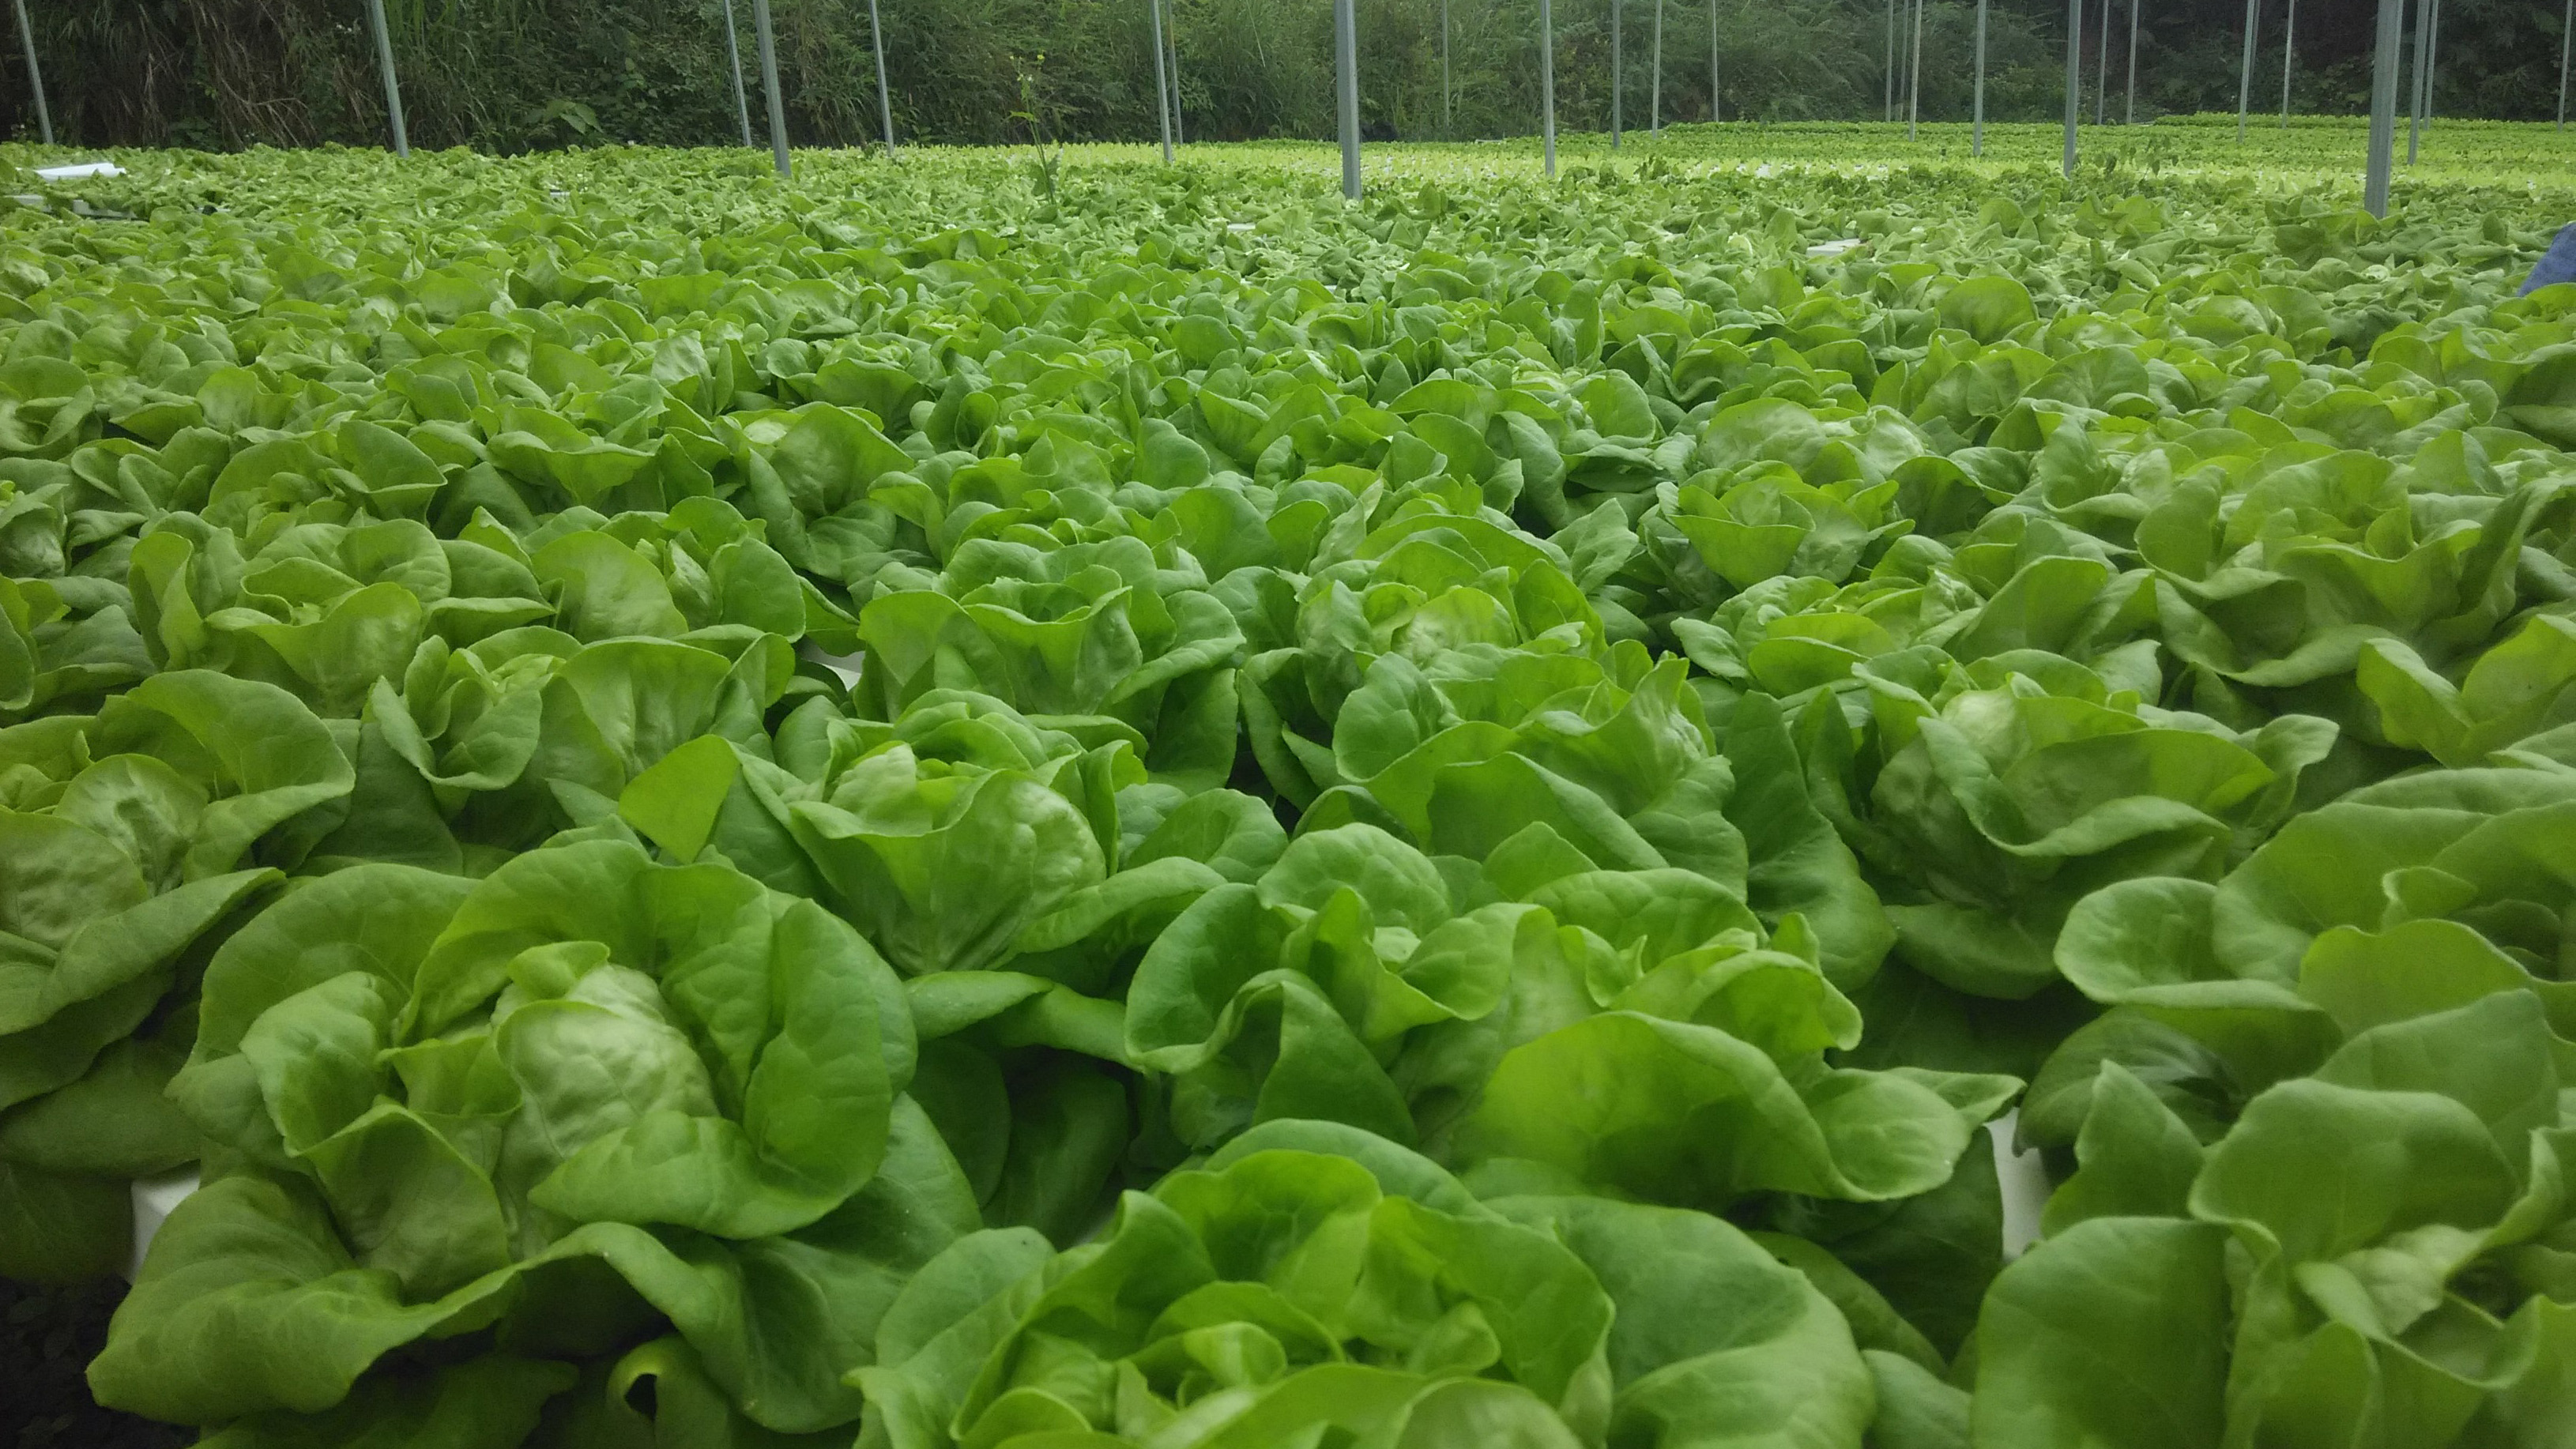 File photo of lettuce growing in a greenhouse. GETTY IMAGES.